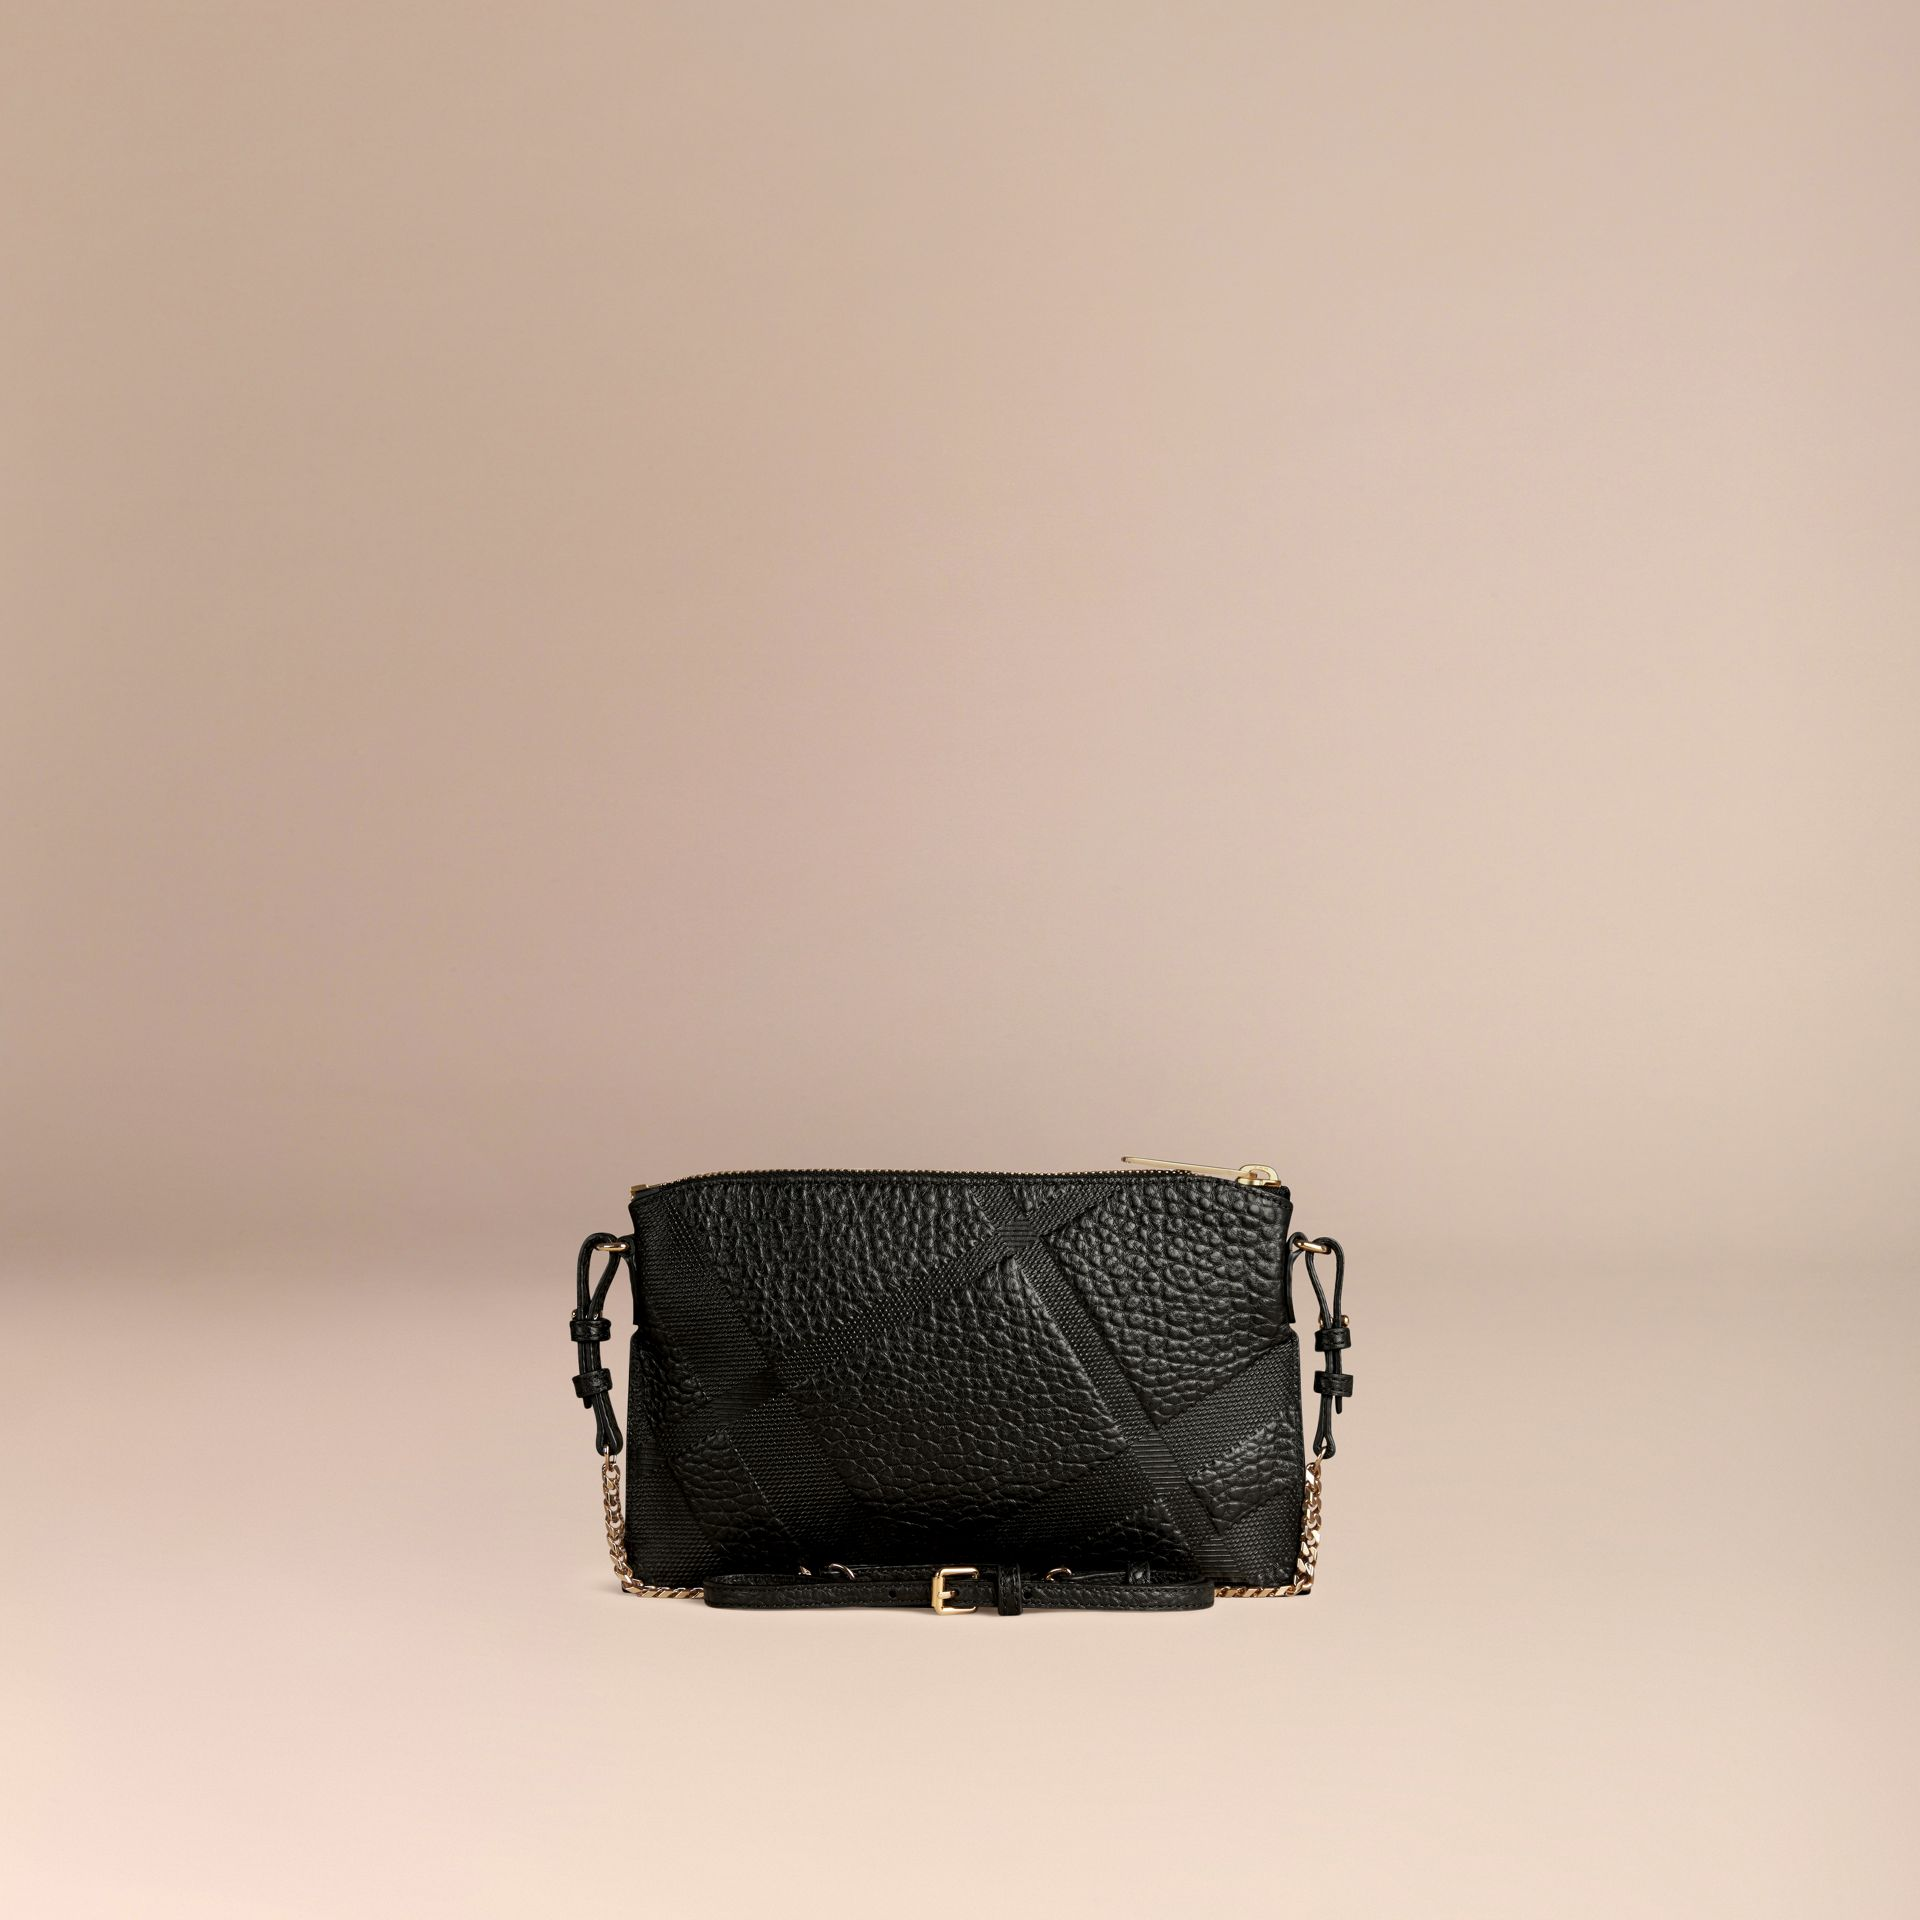 Black Check-embossed Leather Clutch Bag Black - gallery image 4